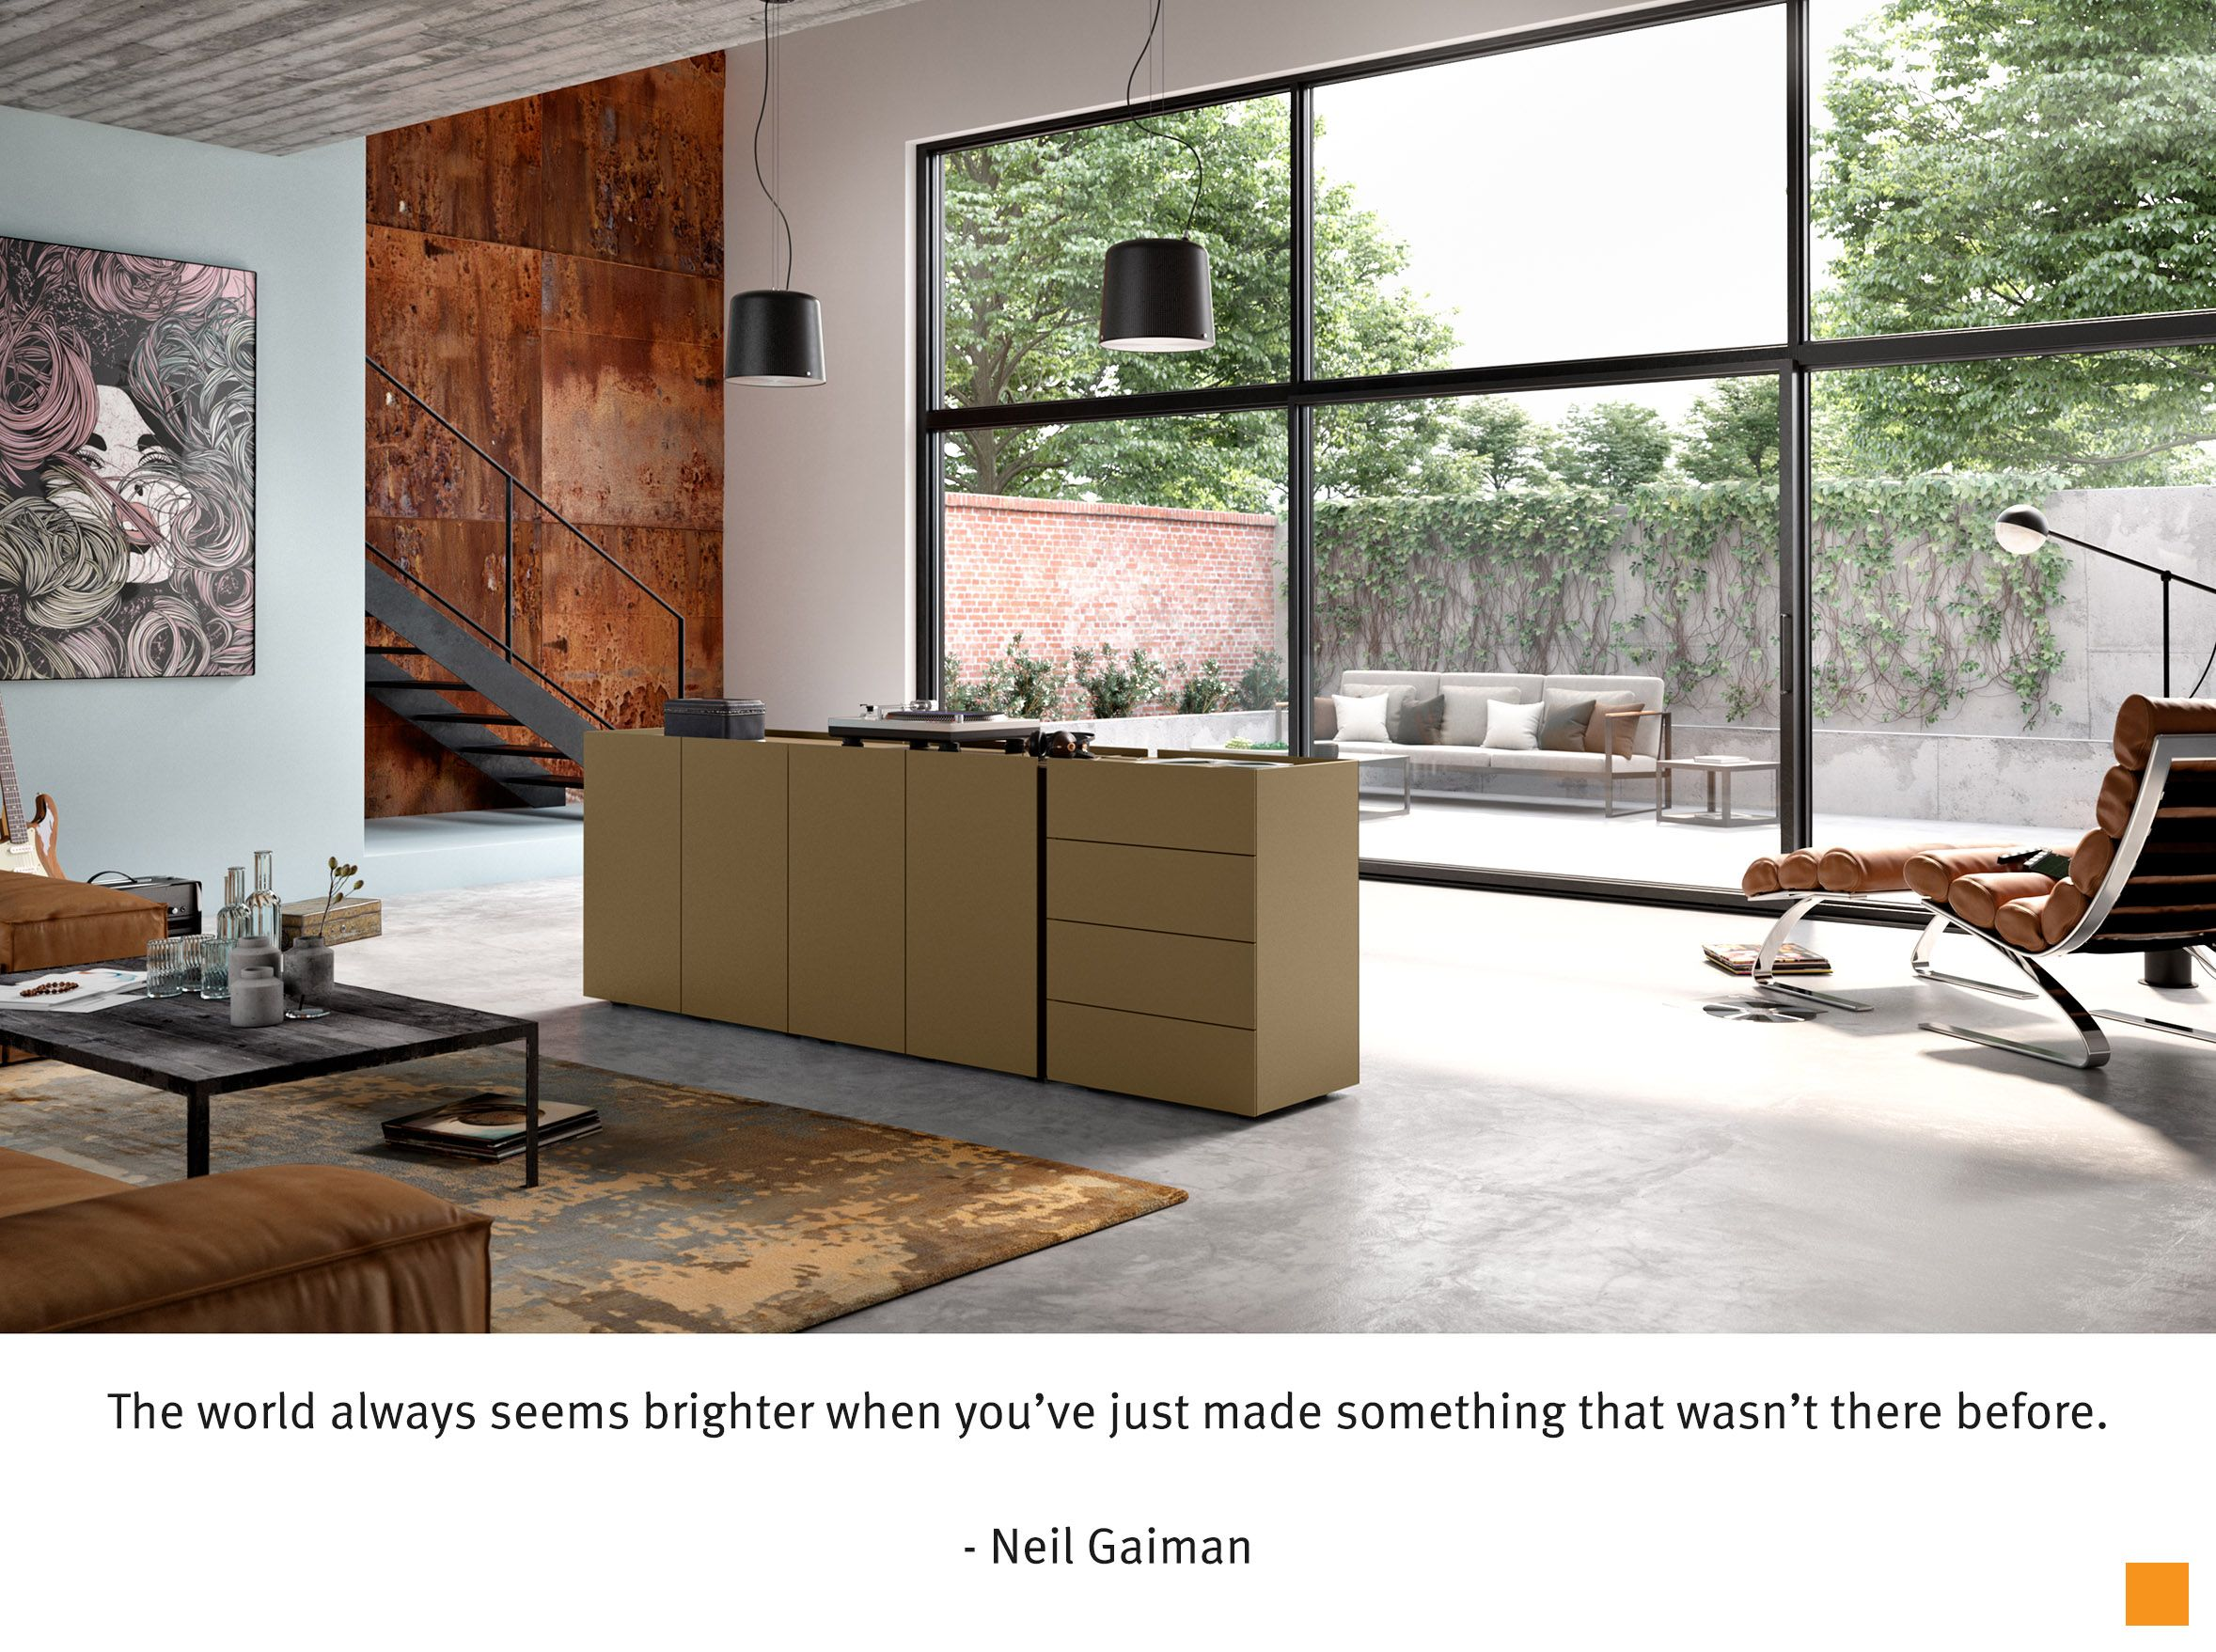 Jorel Sideboard Unites Pure And Authentic Materials With A Crystal Clear Design Statement Kitchen Design Companies German Kitchen Design Kitchen Remodel Plans